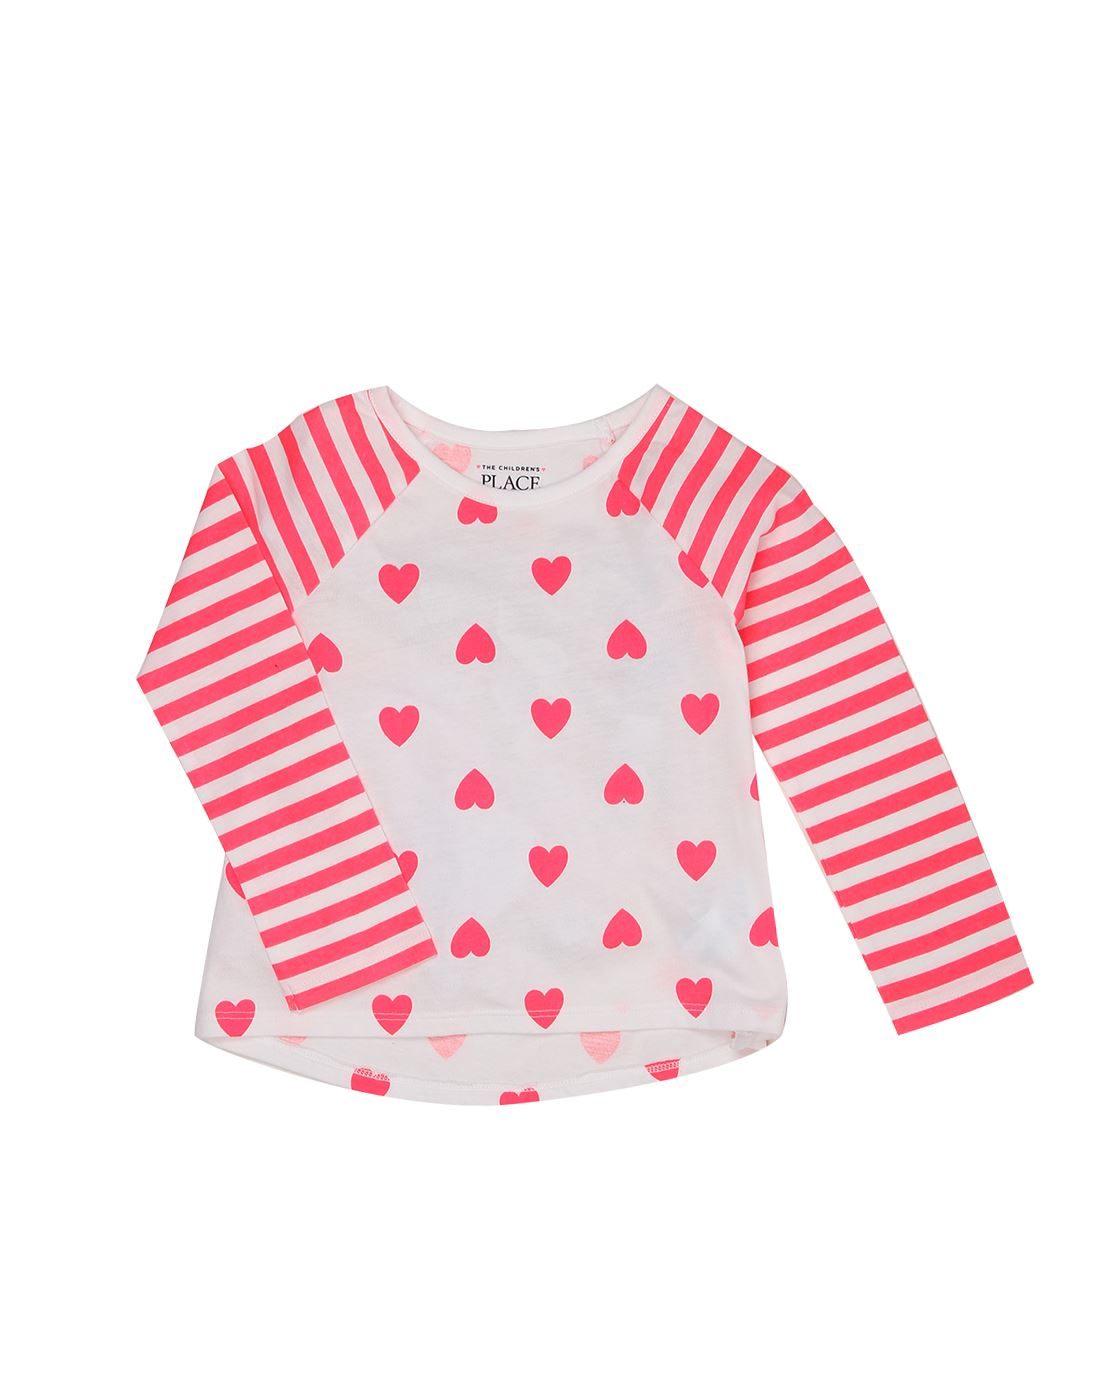 The Children's Place Baby Girls Casual White Top